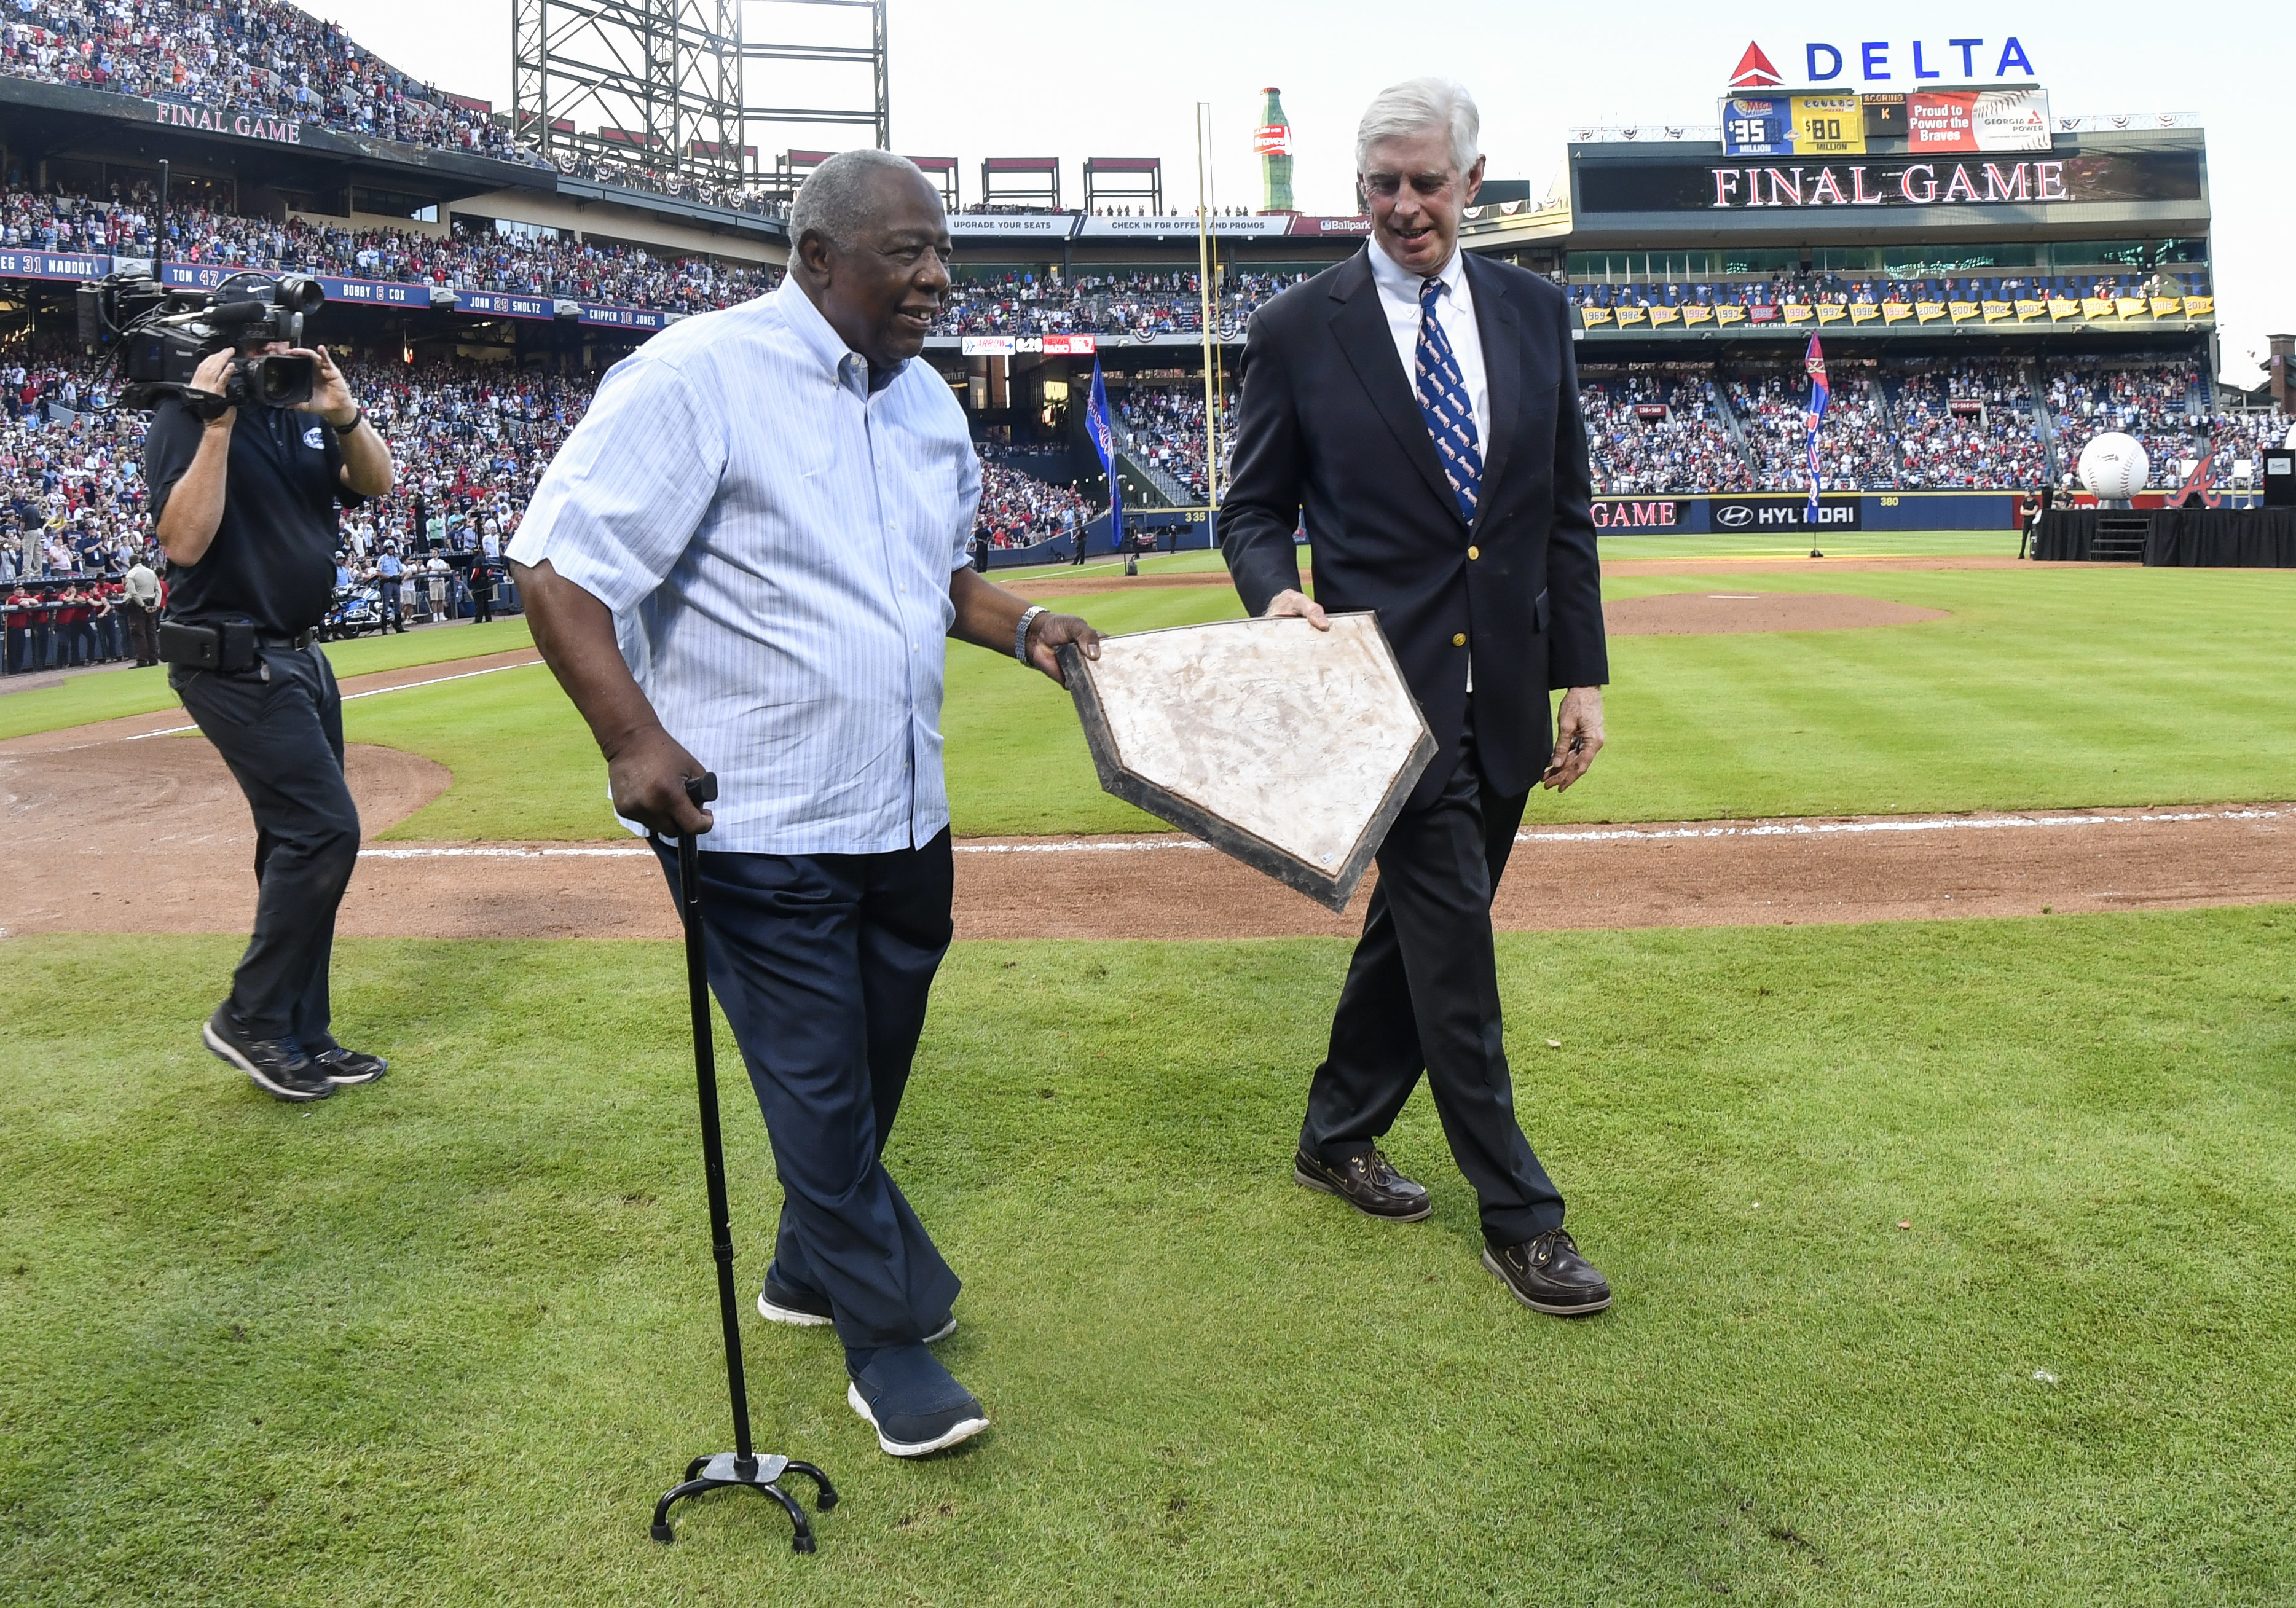 Former Atlanta Braves player and home run record holder Hank Aaron and Braves Chairman Terry McGuirk, right, take home plate, which was taken up from Turner Field, to a van that will take it to SunTrust Park after the baseball game against the Detroit Tig